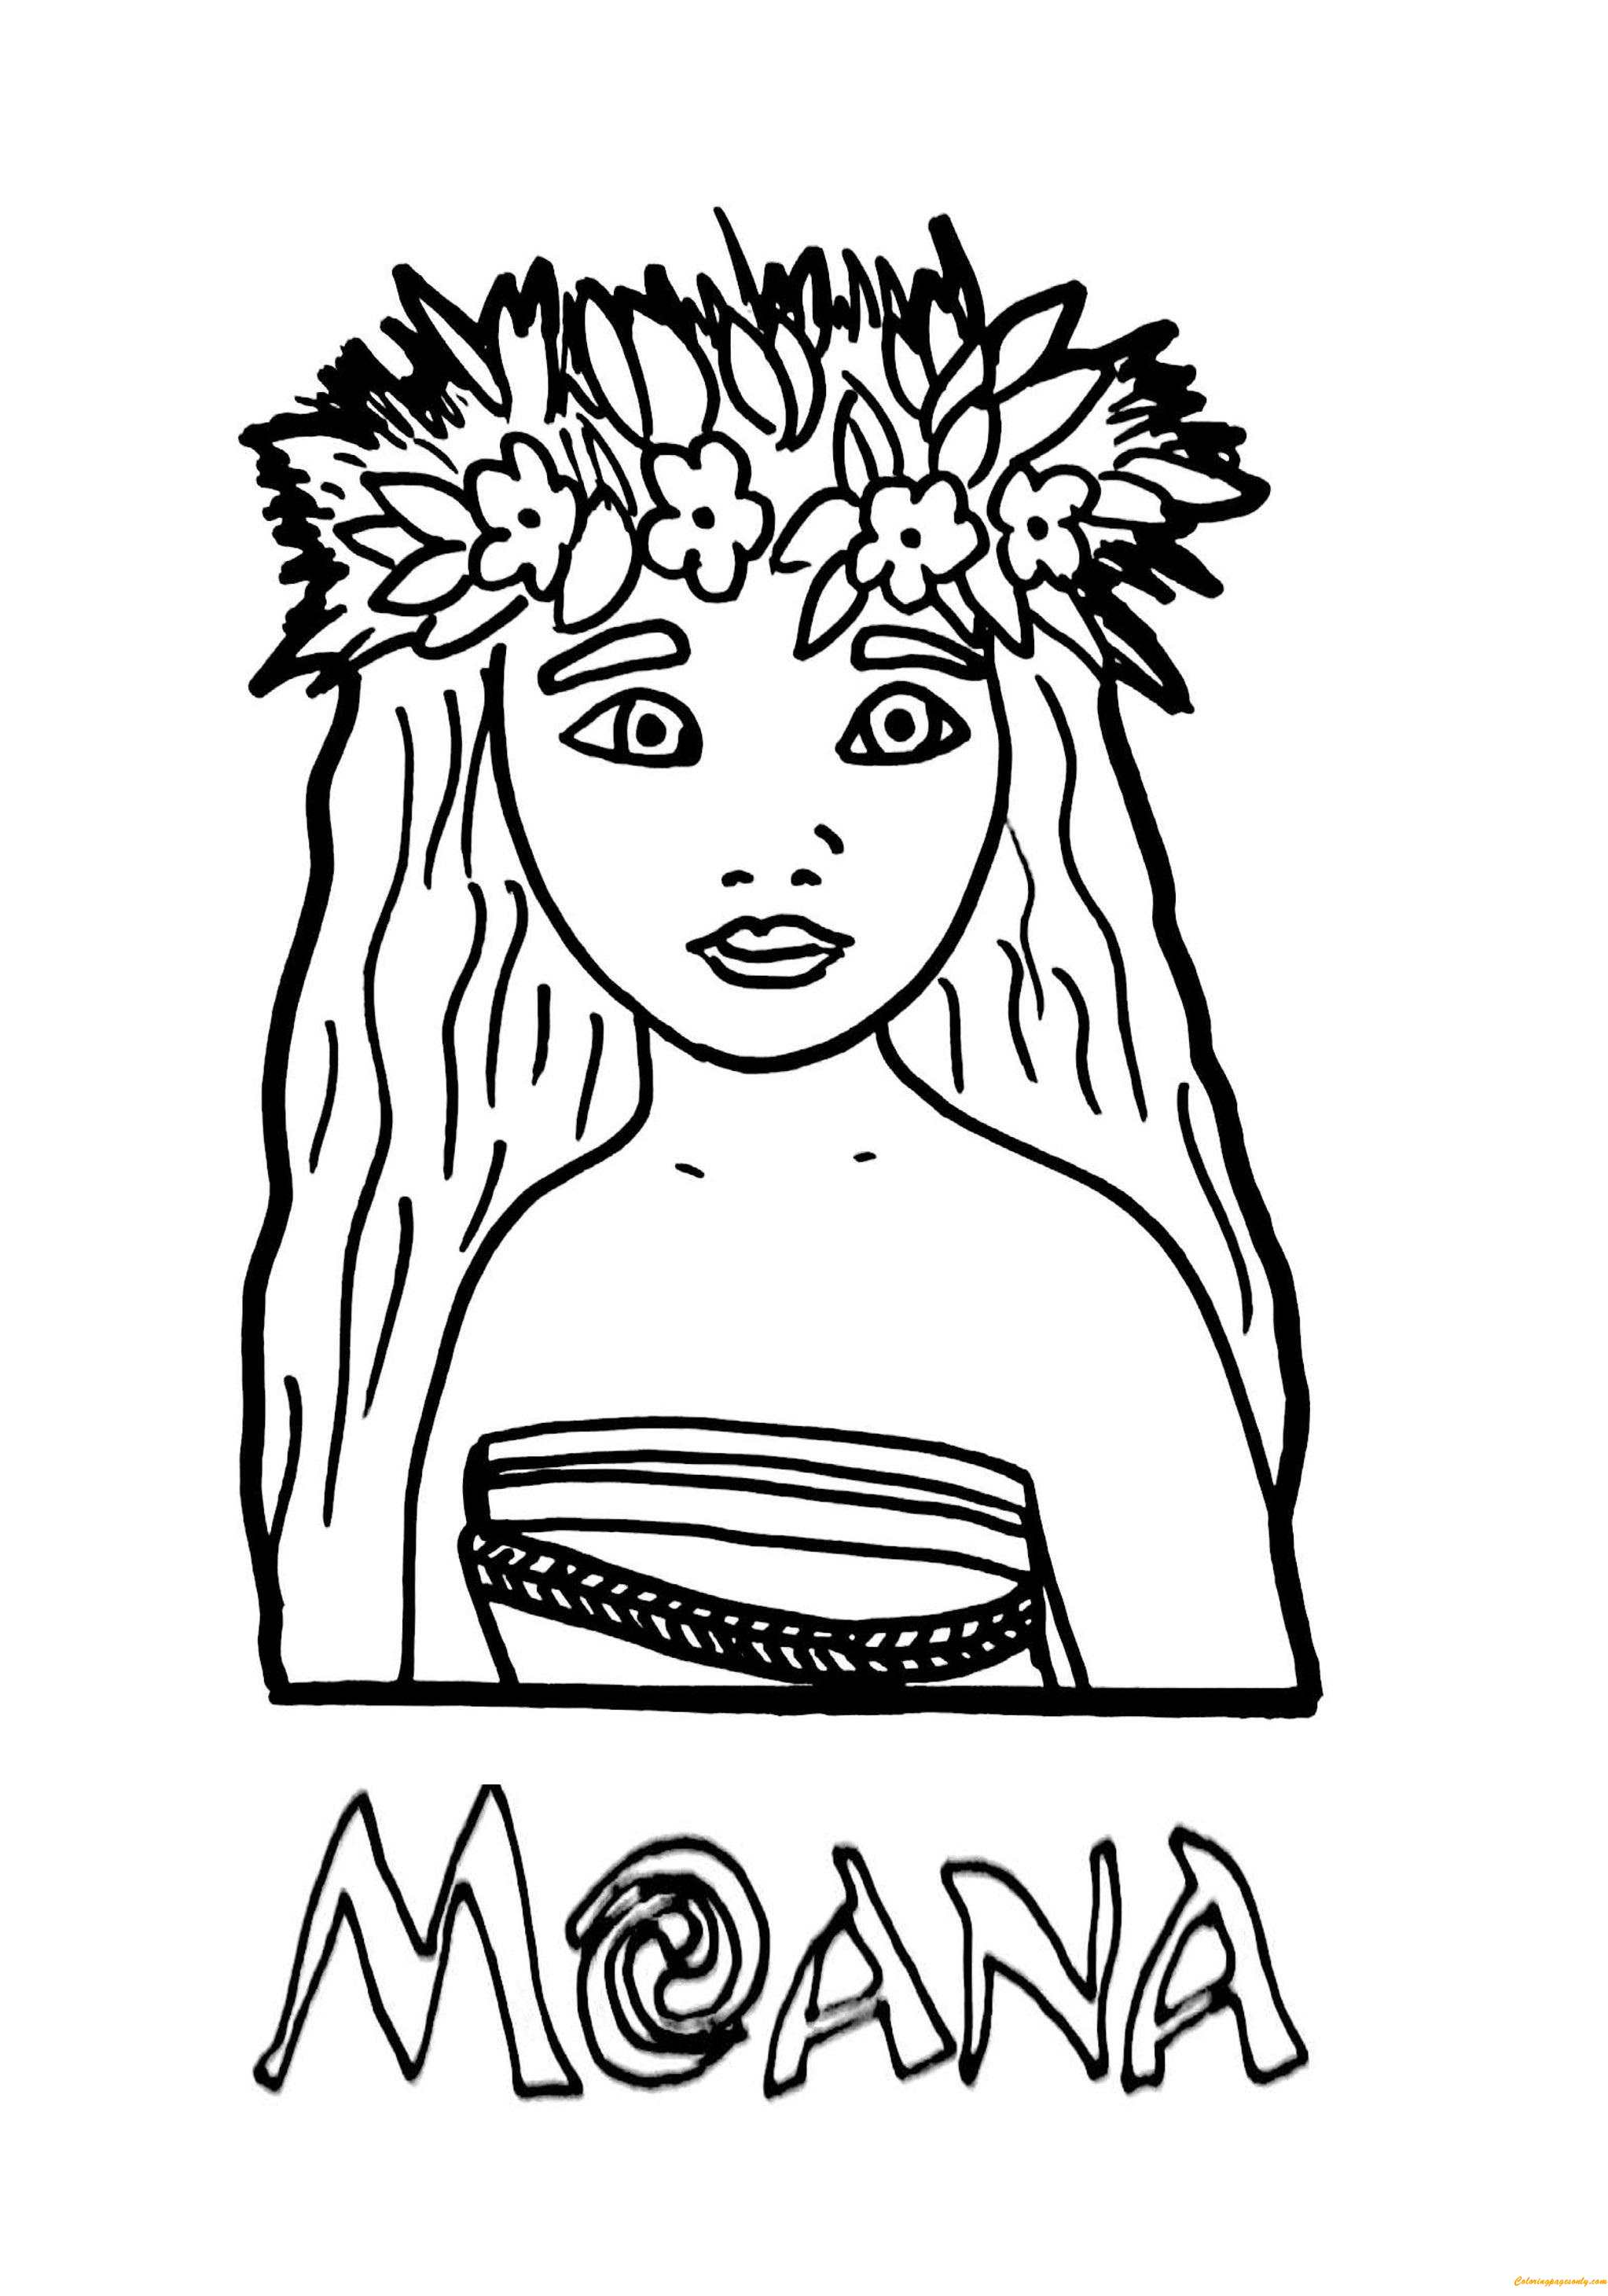 Princess Moana Coloring Page Free Coloring Pages Online